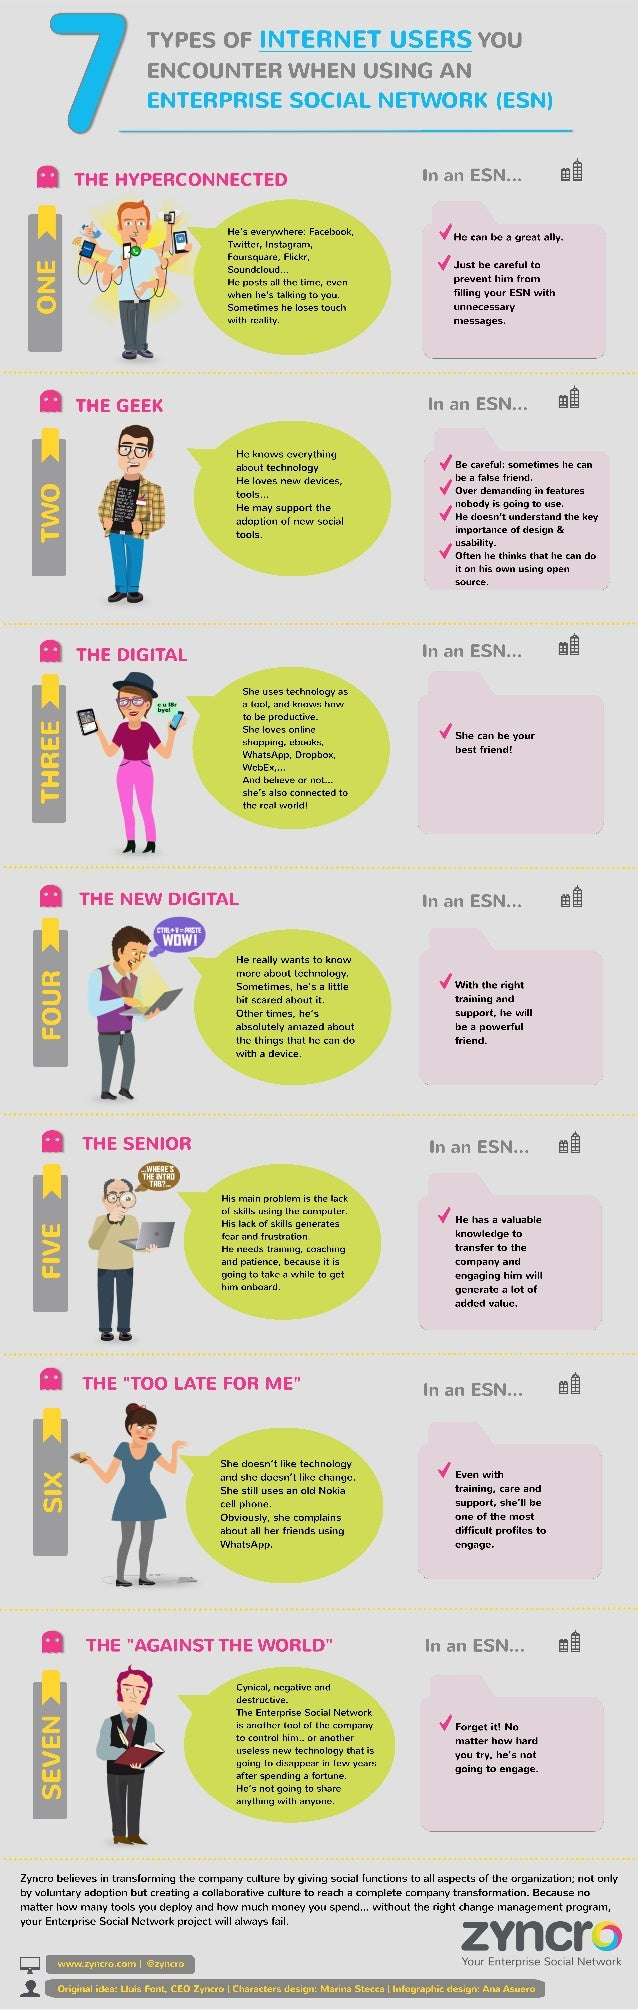 Infographic: 7 types of internet users you encounter when using an Enterprise Social Network